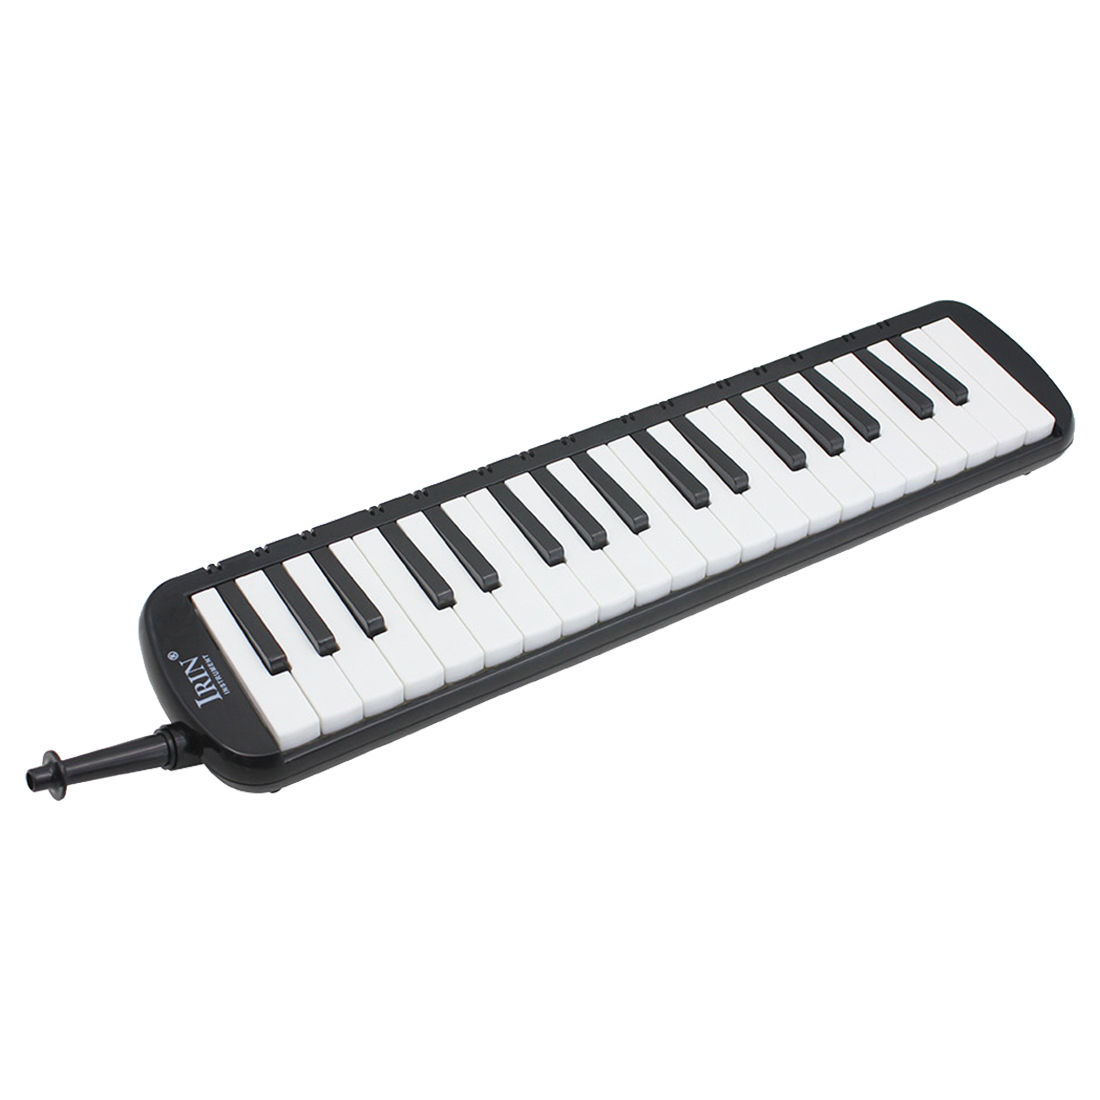 Wholesale 5X SYDS IRIN Black 37 Piano Keys Melodica Pianica w/Carrying Bag For Students NewWholesale 5X SYDS IRIN Black 37 Piano Keys Melodica Pianica w/Carrying Bag For Students New